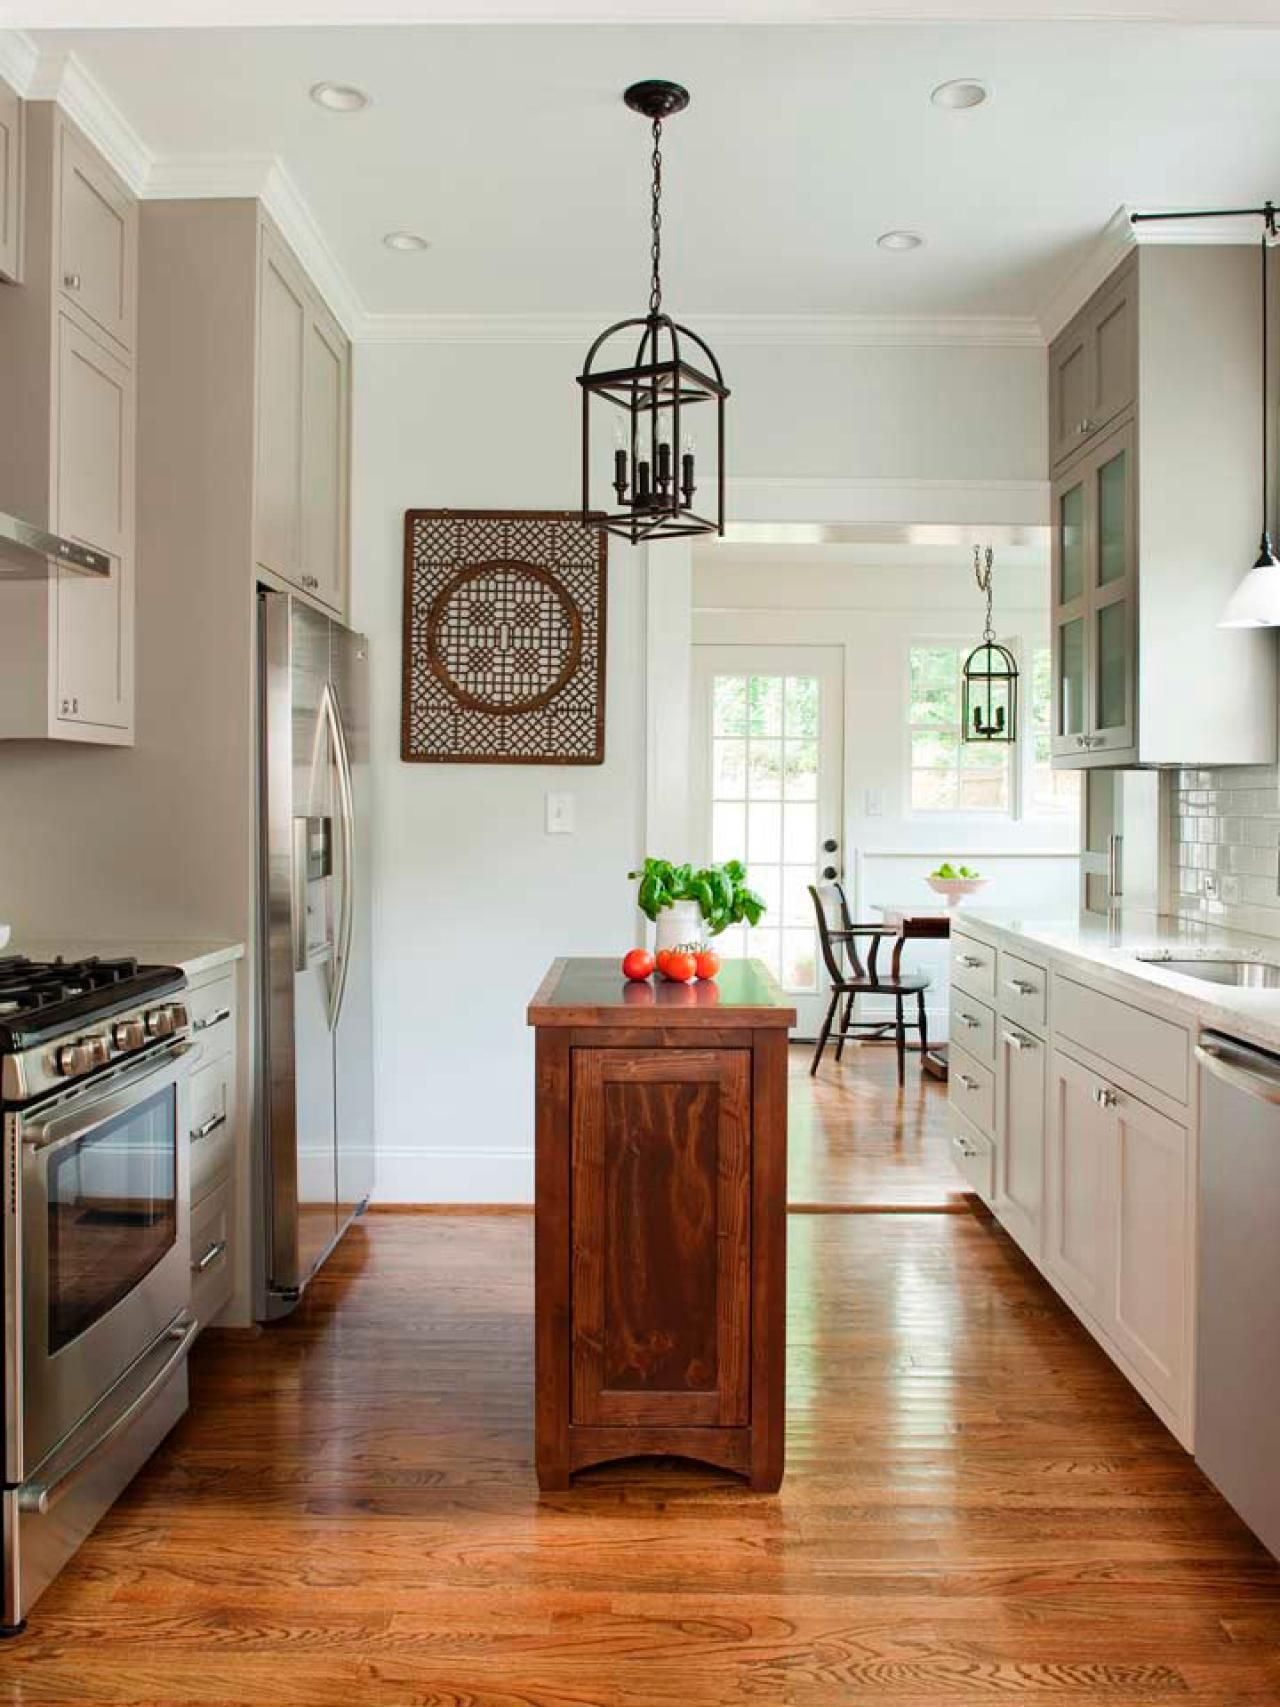 If You Think That An Island Only Works With An Open Concept Layout This Galley Kitchen Desig Narrow Kitchen Island Galley Kitchen Design Custom Kitchen Island Galley kitchen designs with island